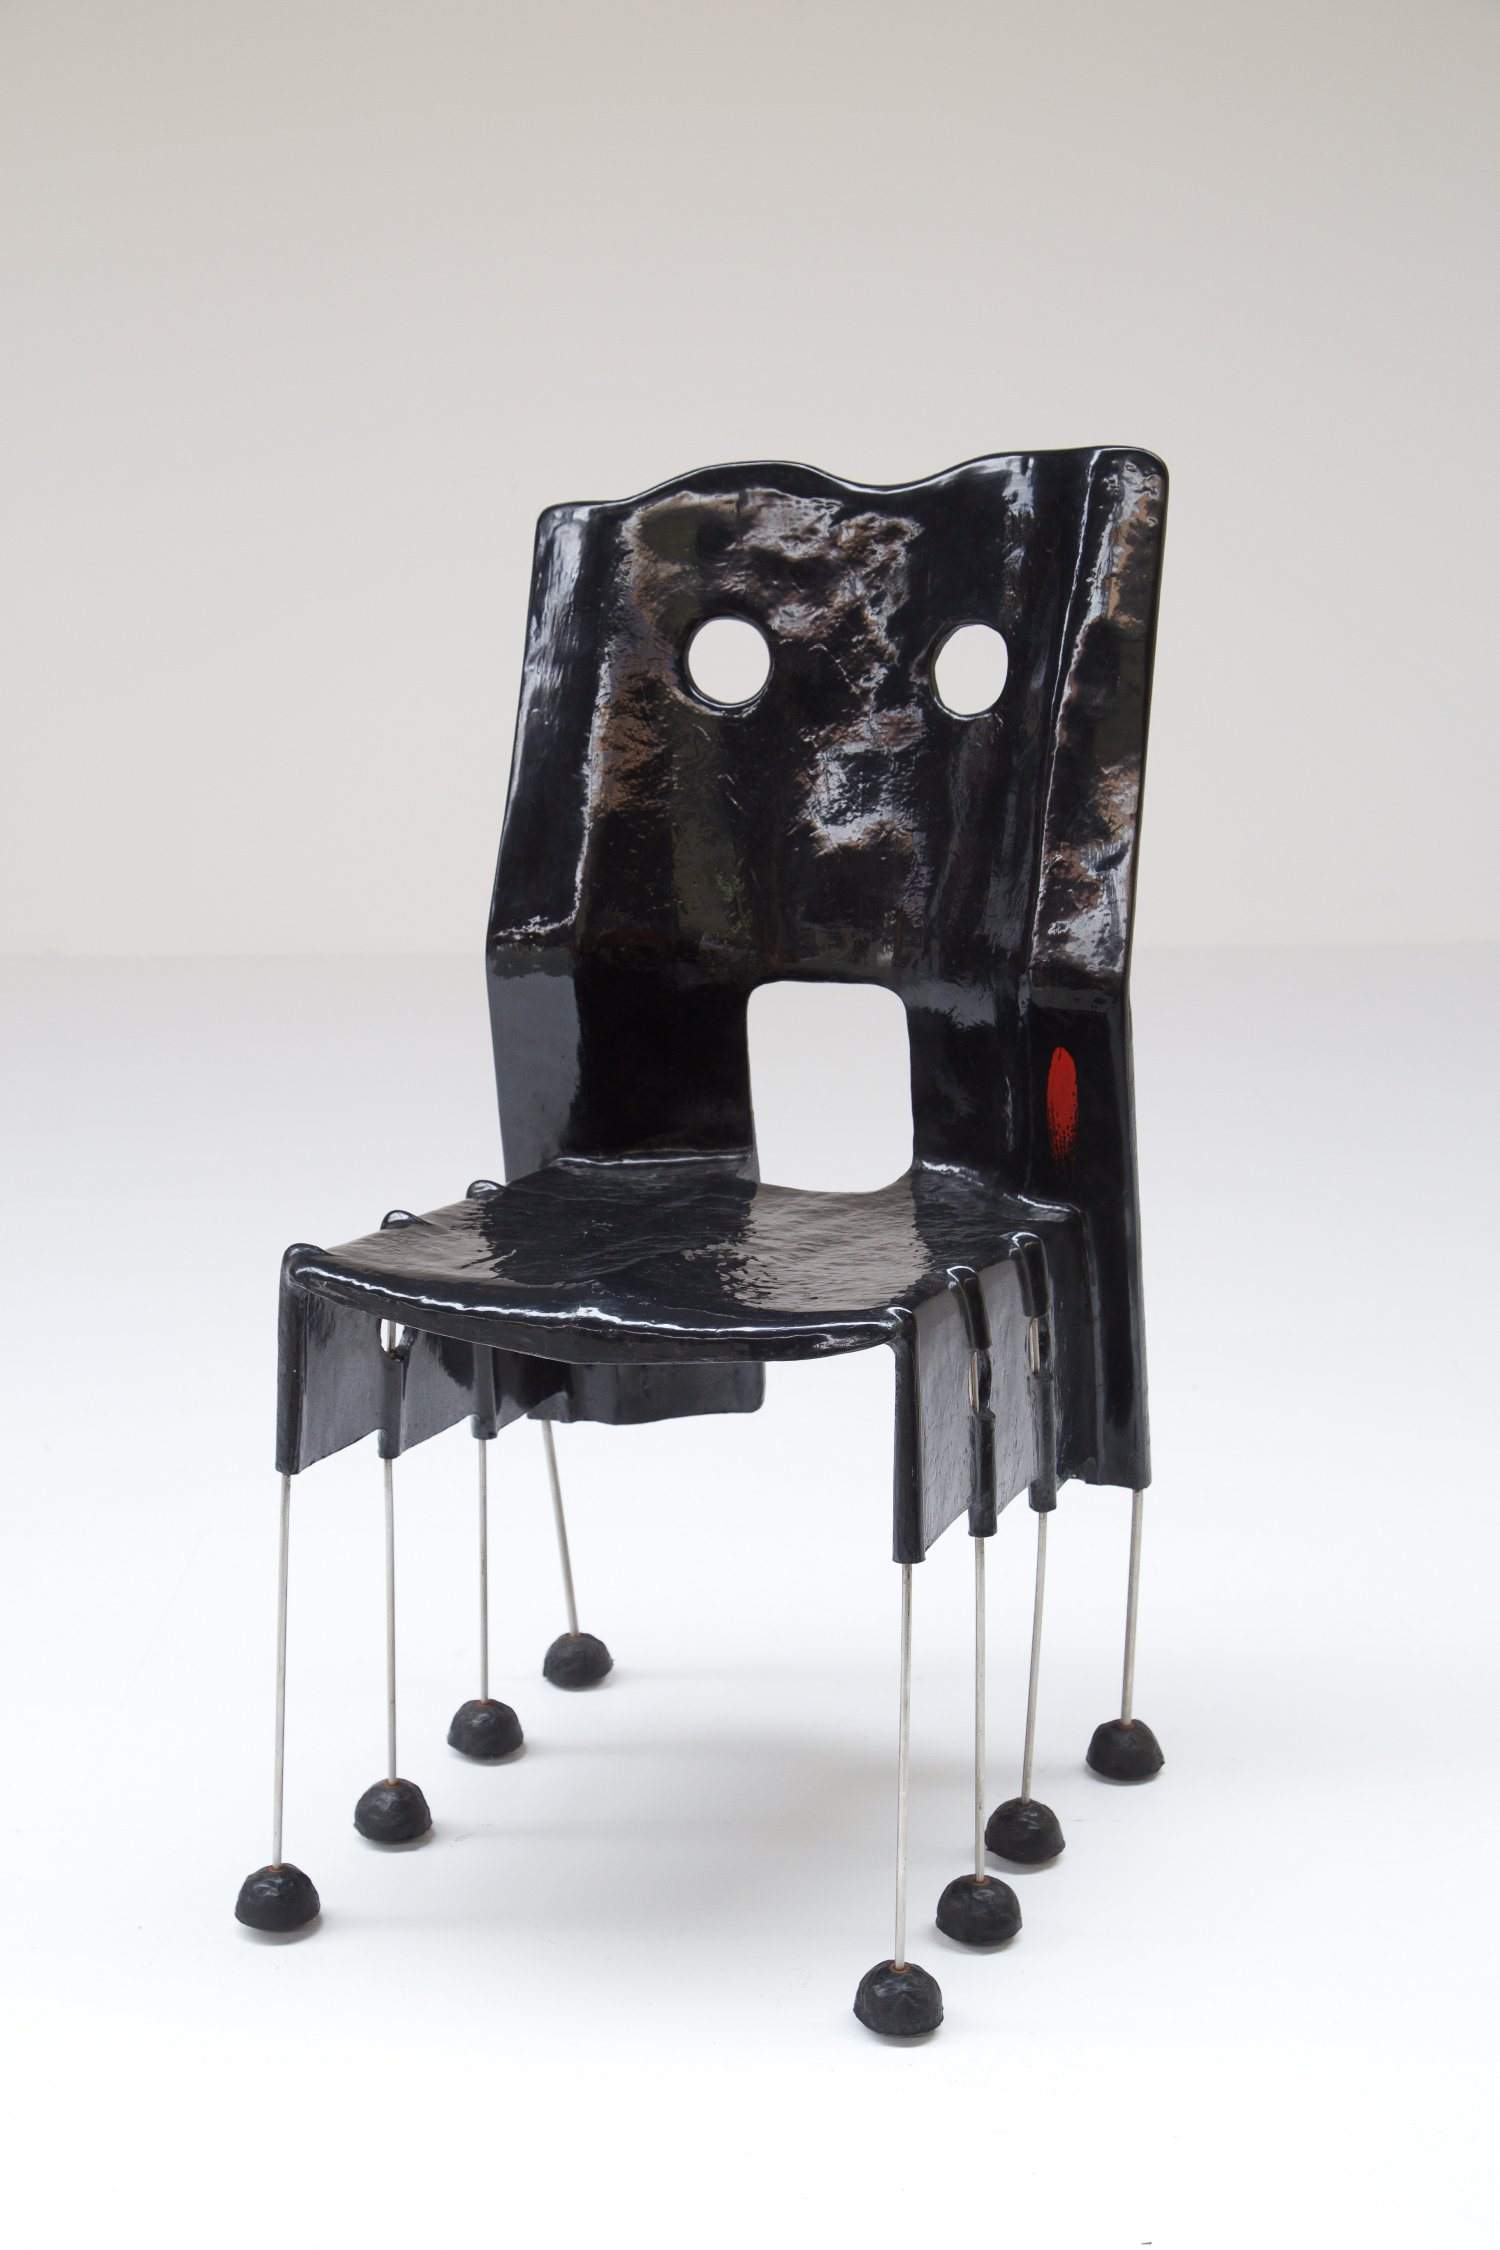 Gaetano Pesce Green Street chair